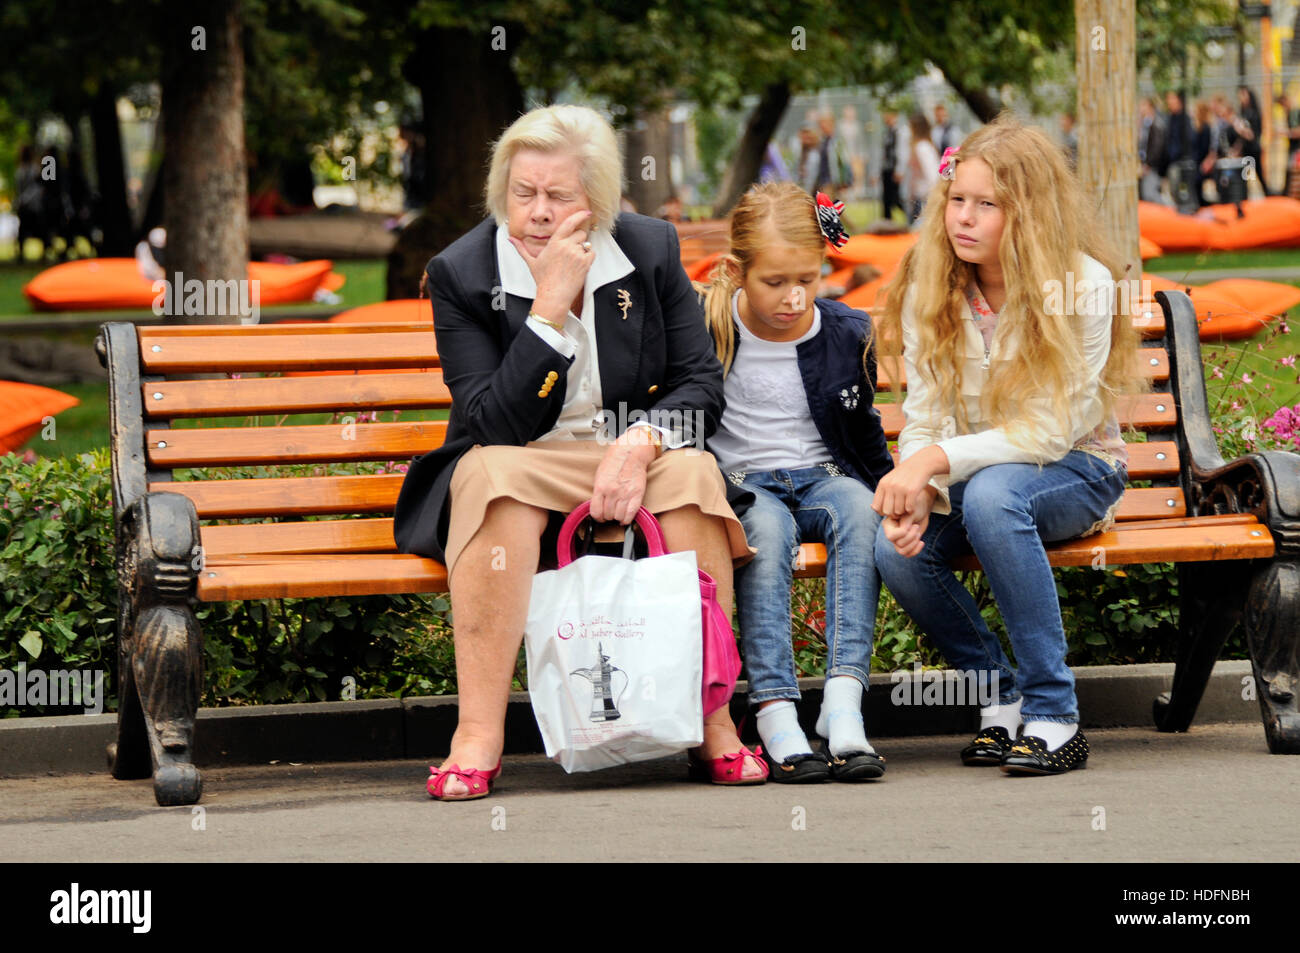 Russian grandmother with grandchildren sitting on a bench, looking sad. Gorki Park, Moscow, Russia Stock Photo